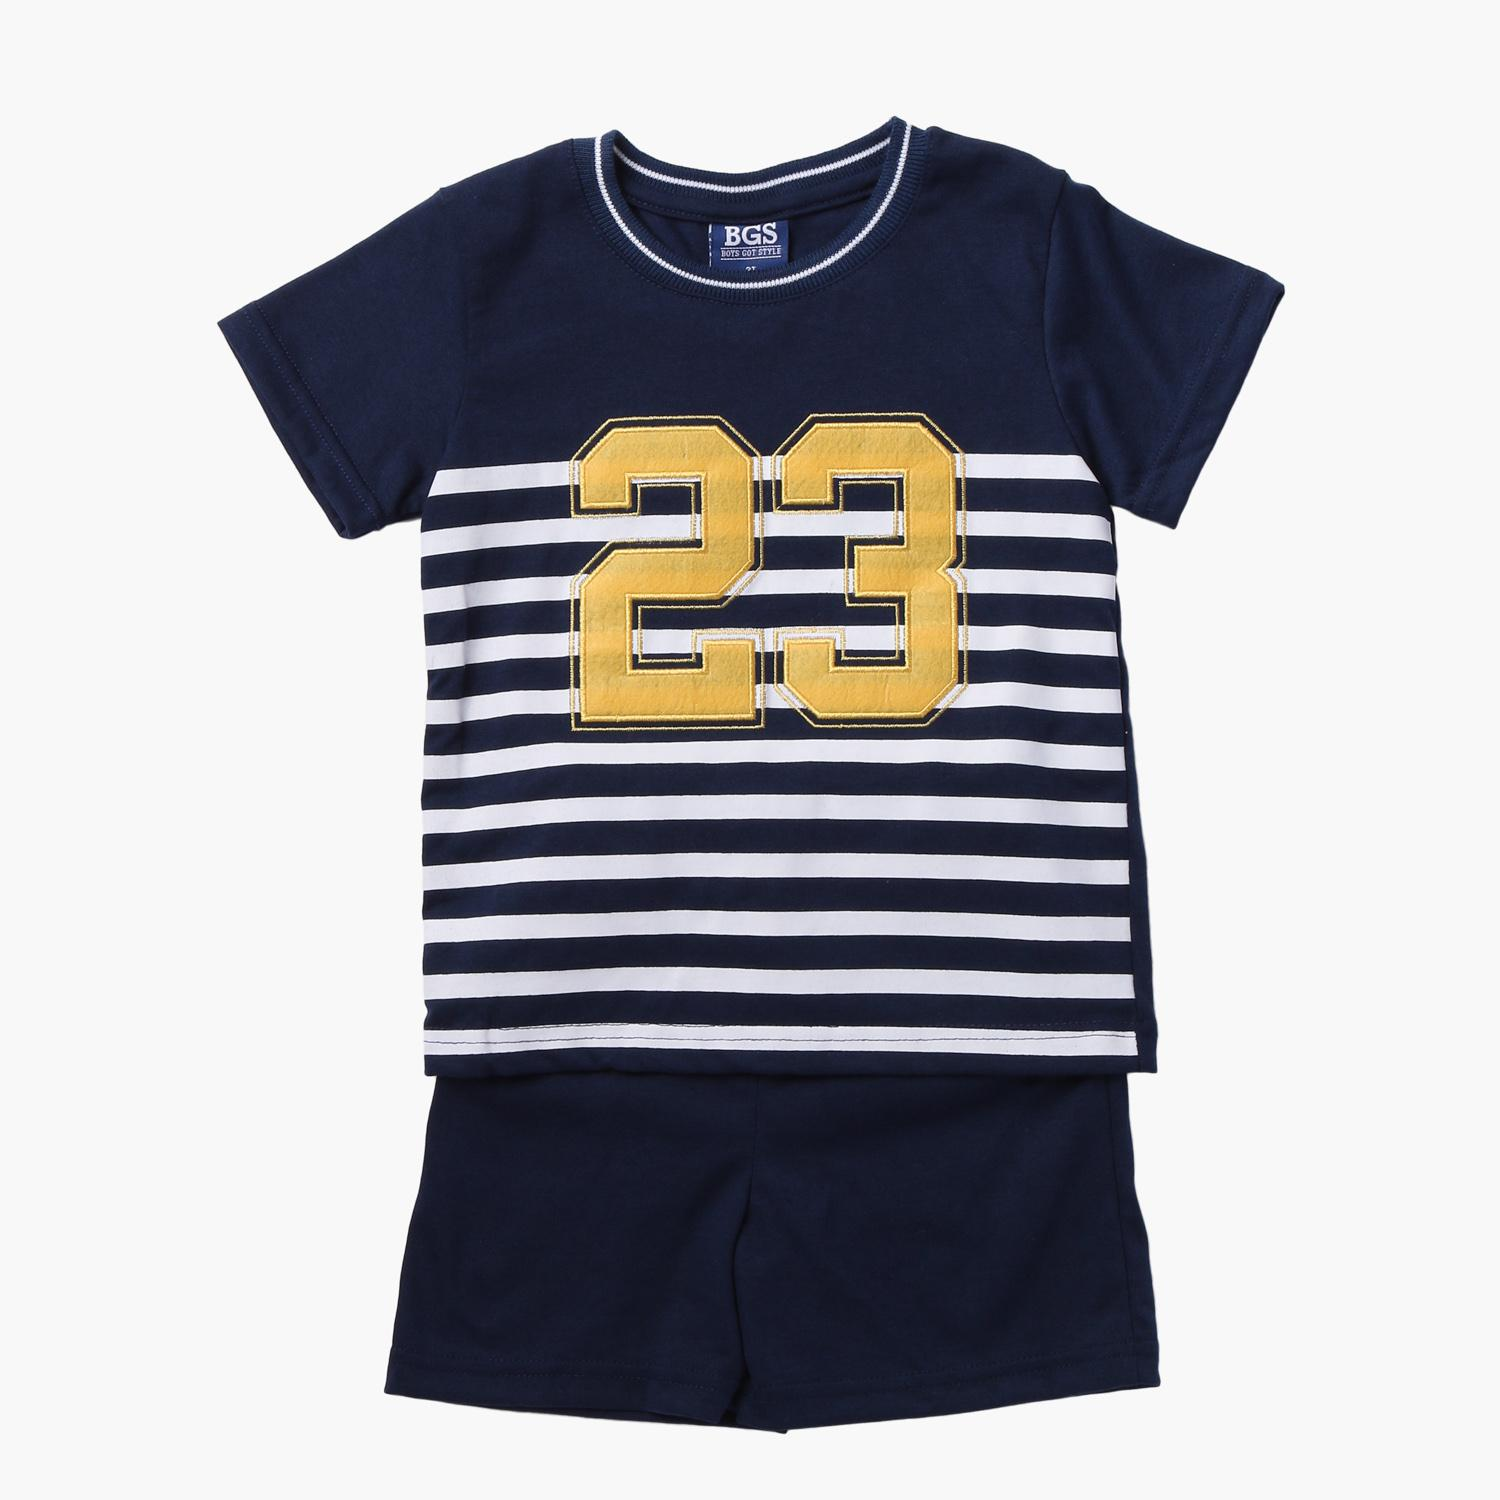 Bgs Philippines Bgs Price List Baby Polo Shirts Baby Jackets